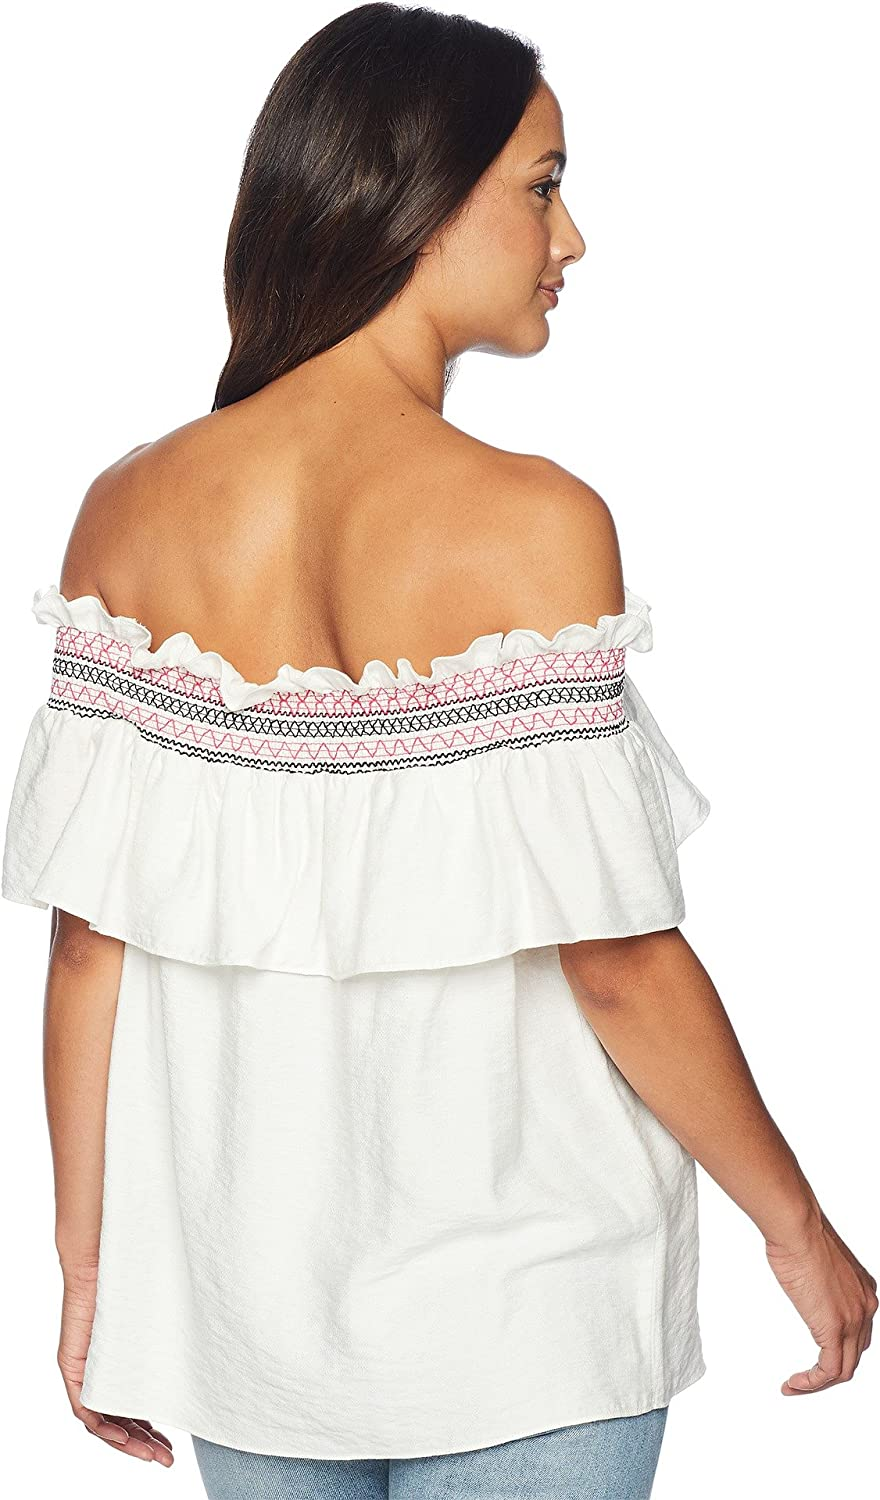 44caec35504c6 CeCe Womens Off The Shoulder Ruffled Top with RIC Rac Trim at Amazon  Women s Clothing store